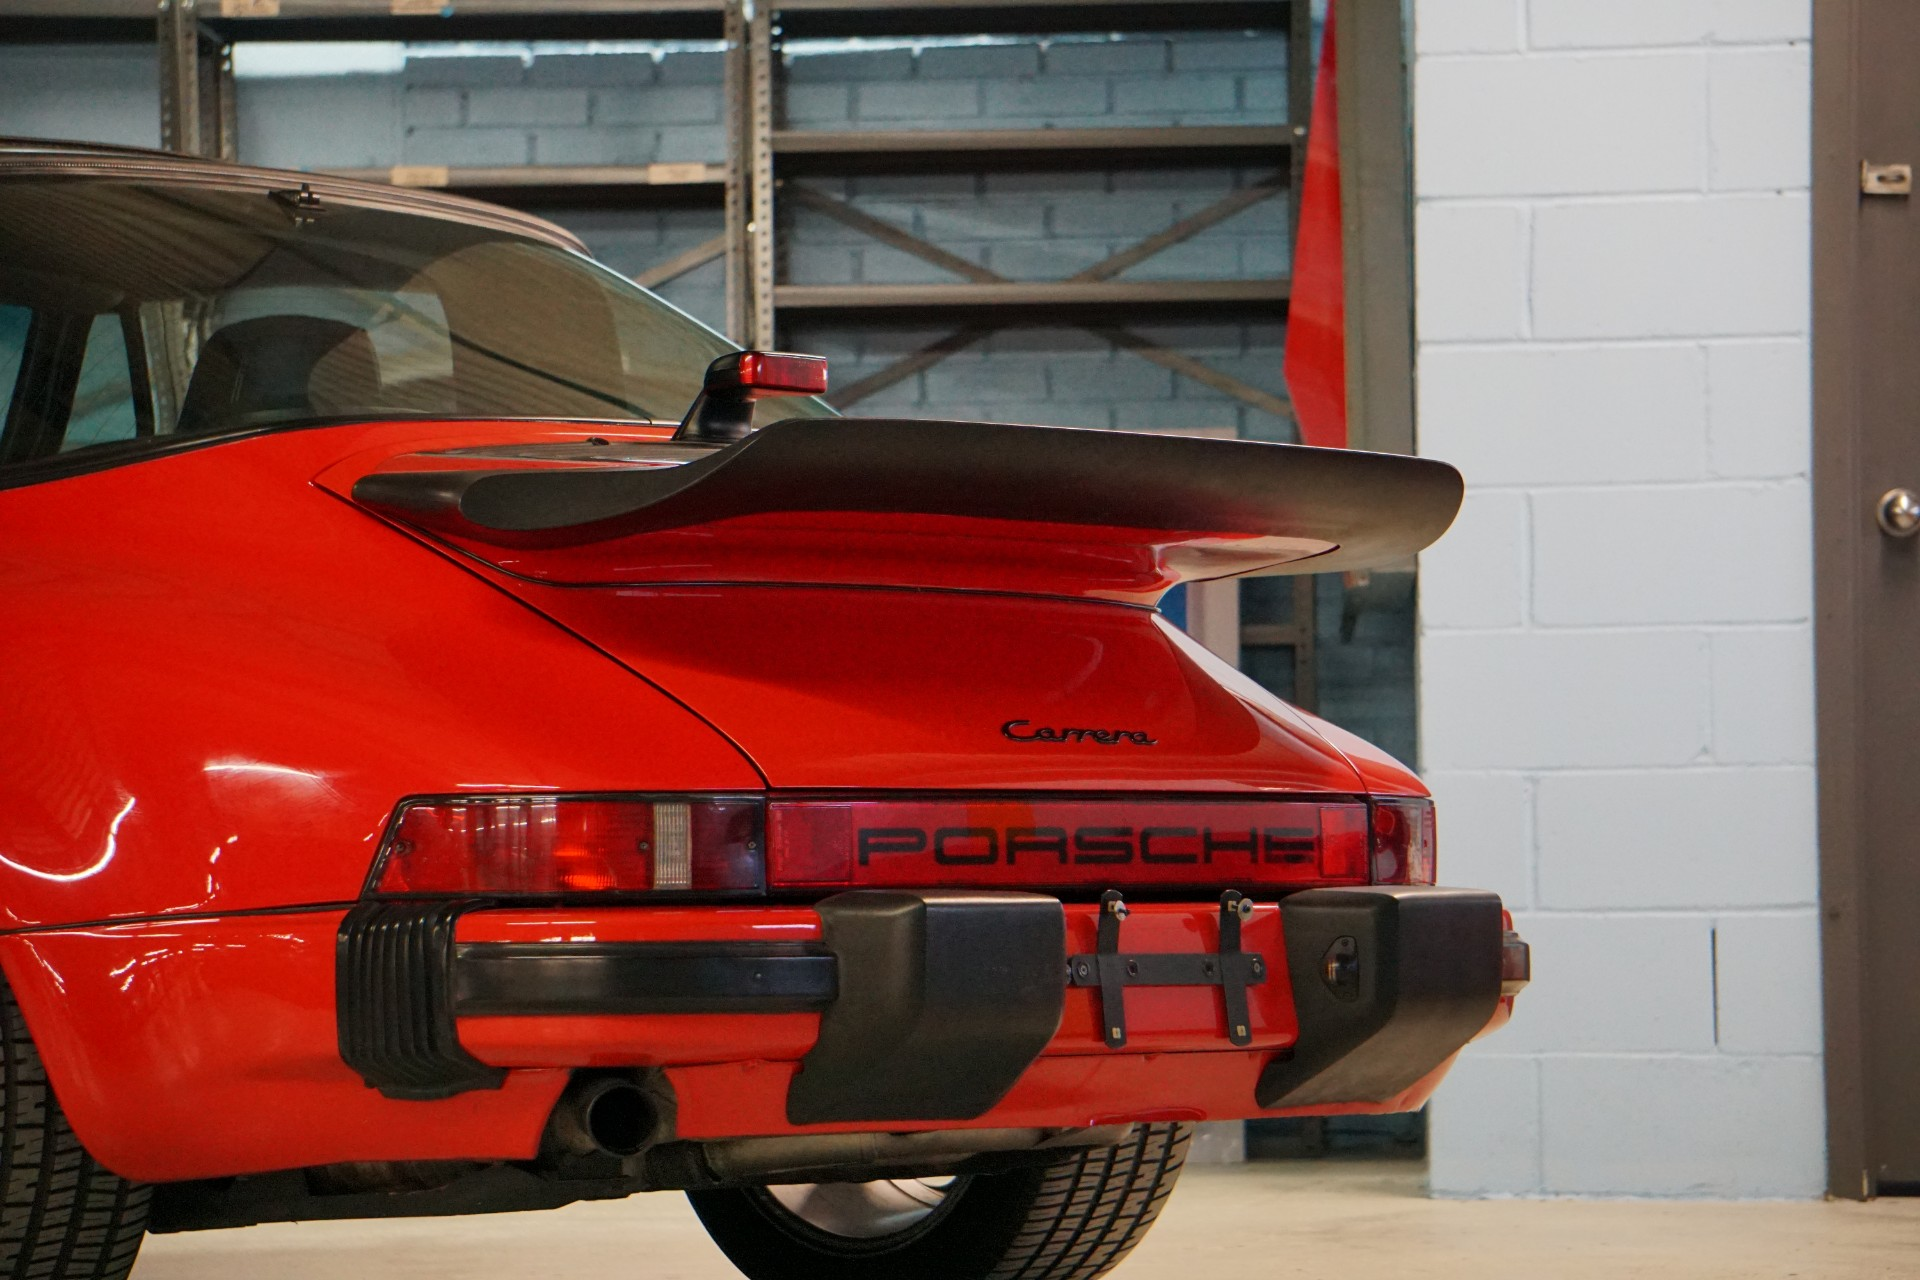 DEAL TANK: 1985 Porsche 911 Targa Slant Nose Conversion